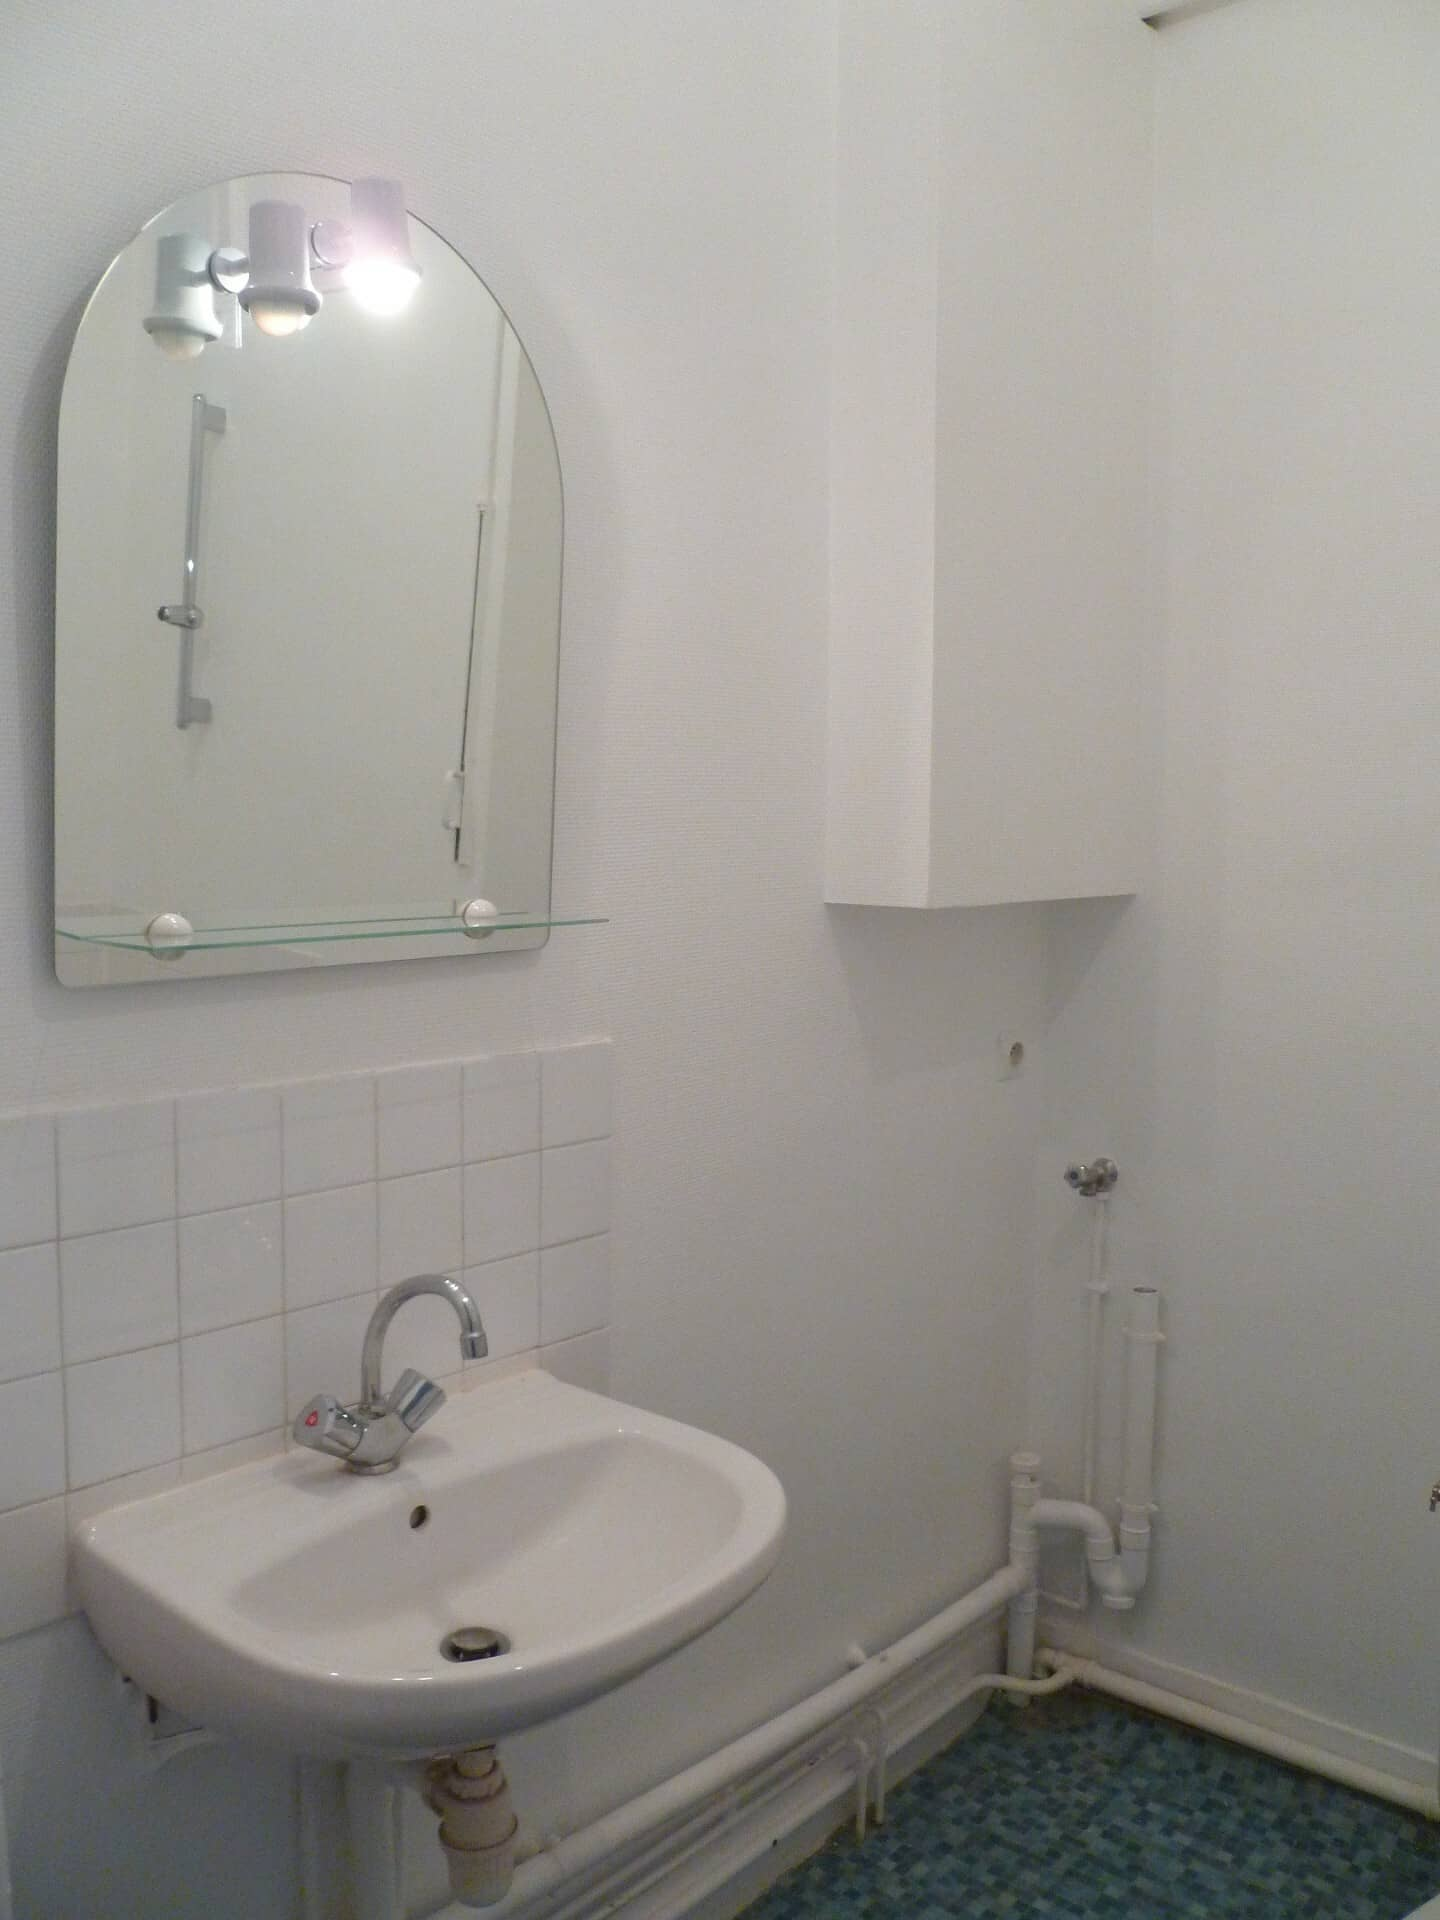 Location Appartement type F2 Le Havre 216